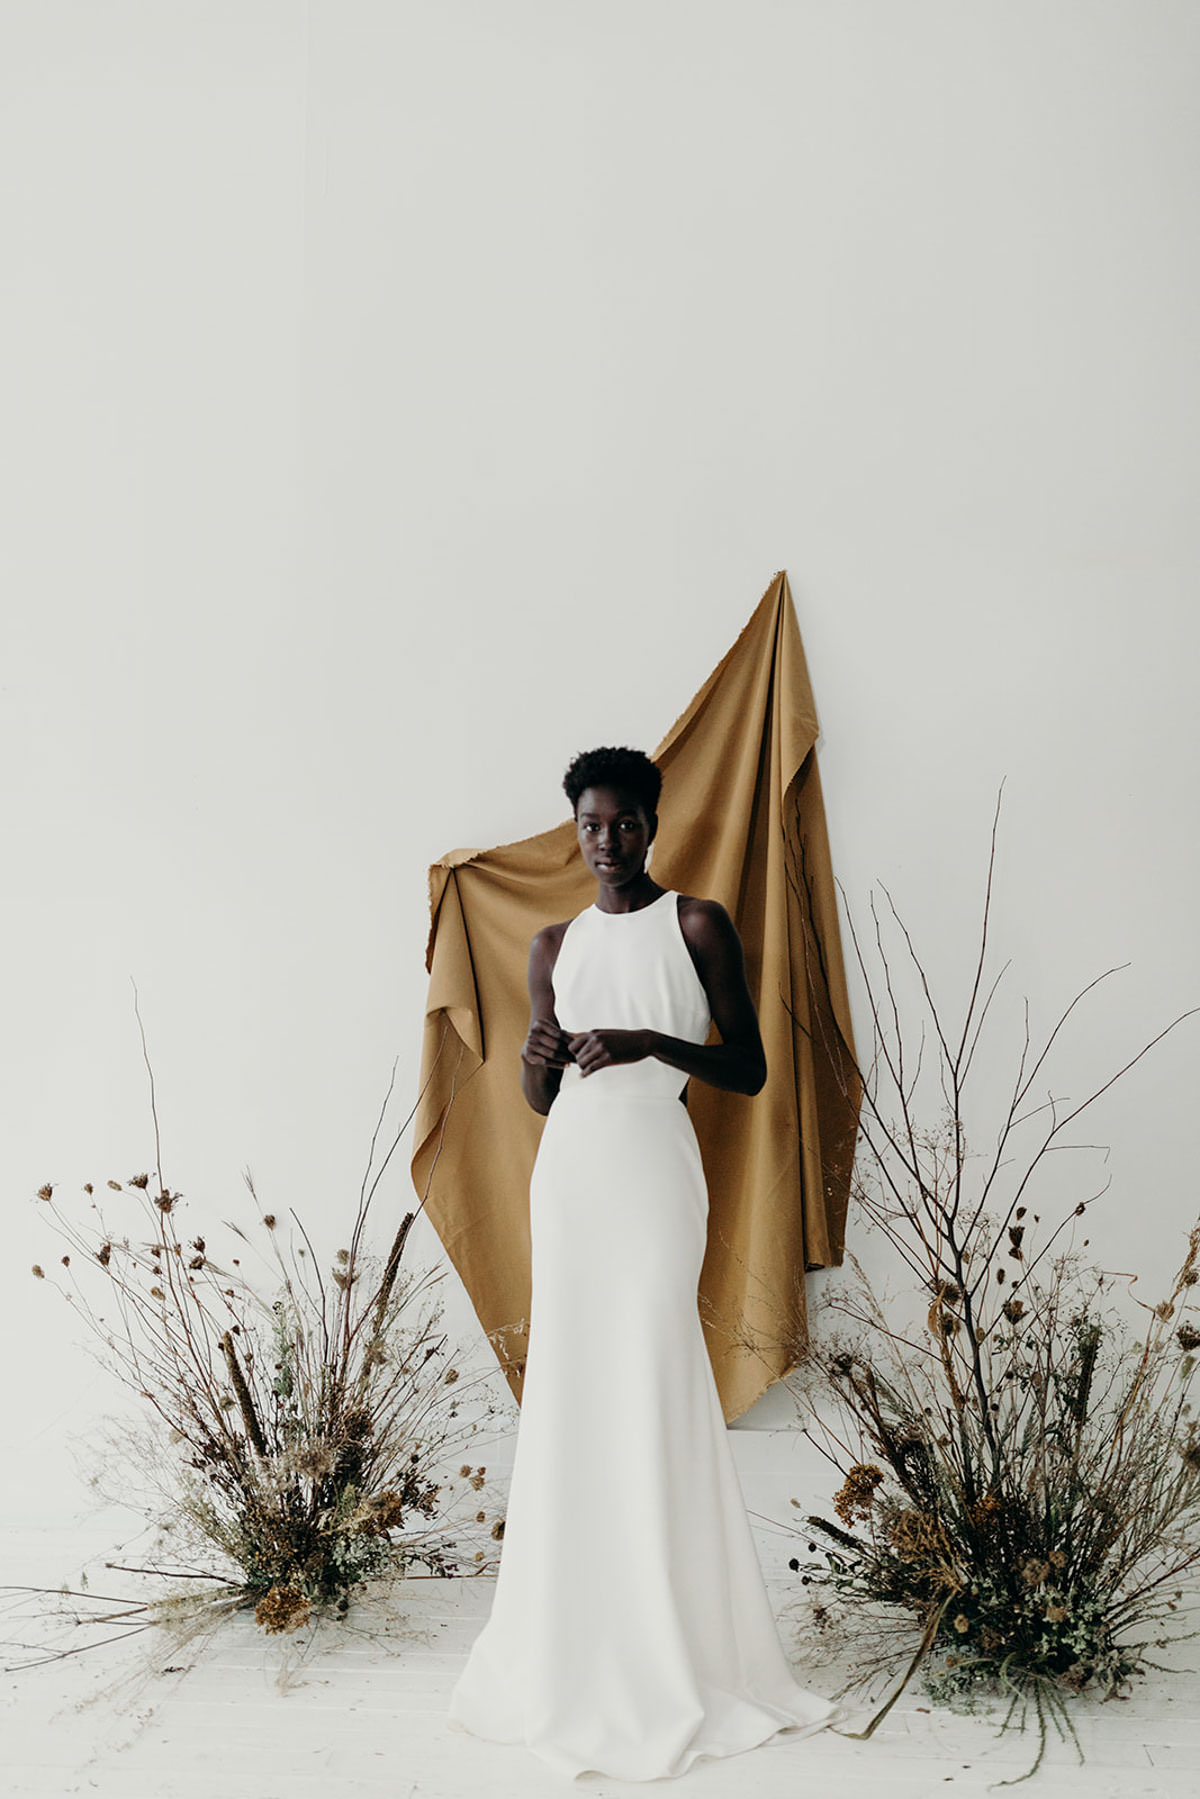 beautiful bride, black bride, beauty editorial, , classic bride, delicate bridalwear, edgy bridalstyle, feminine bride, hand painted florals, kaley from Kanvas, mininal bridalstyle, mordern bride, nature wedding, organic beauty, tonal backdrop